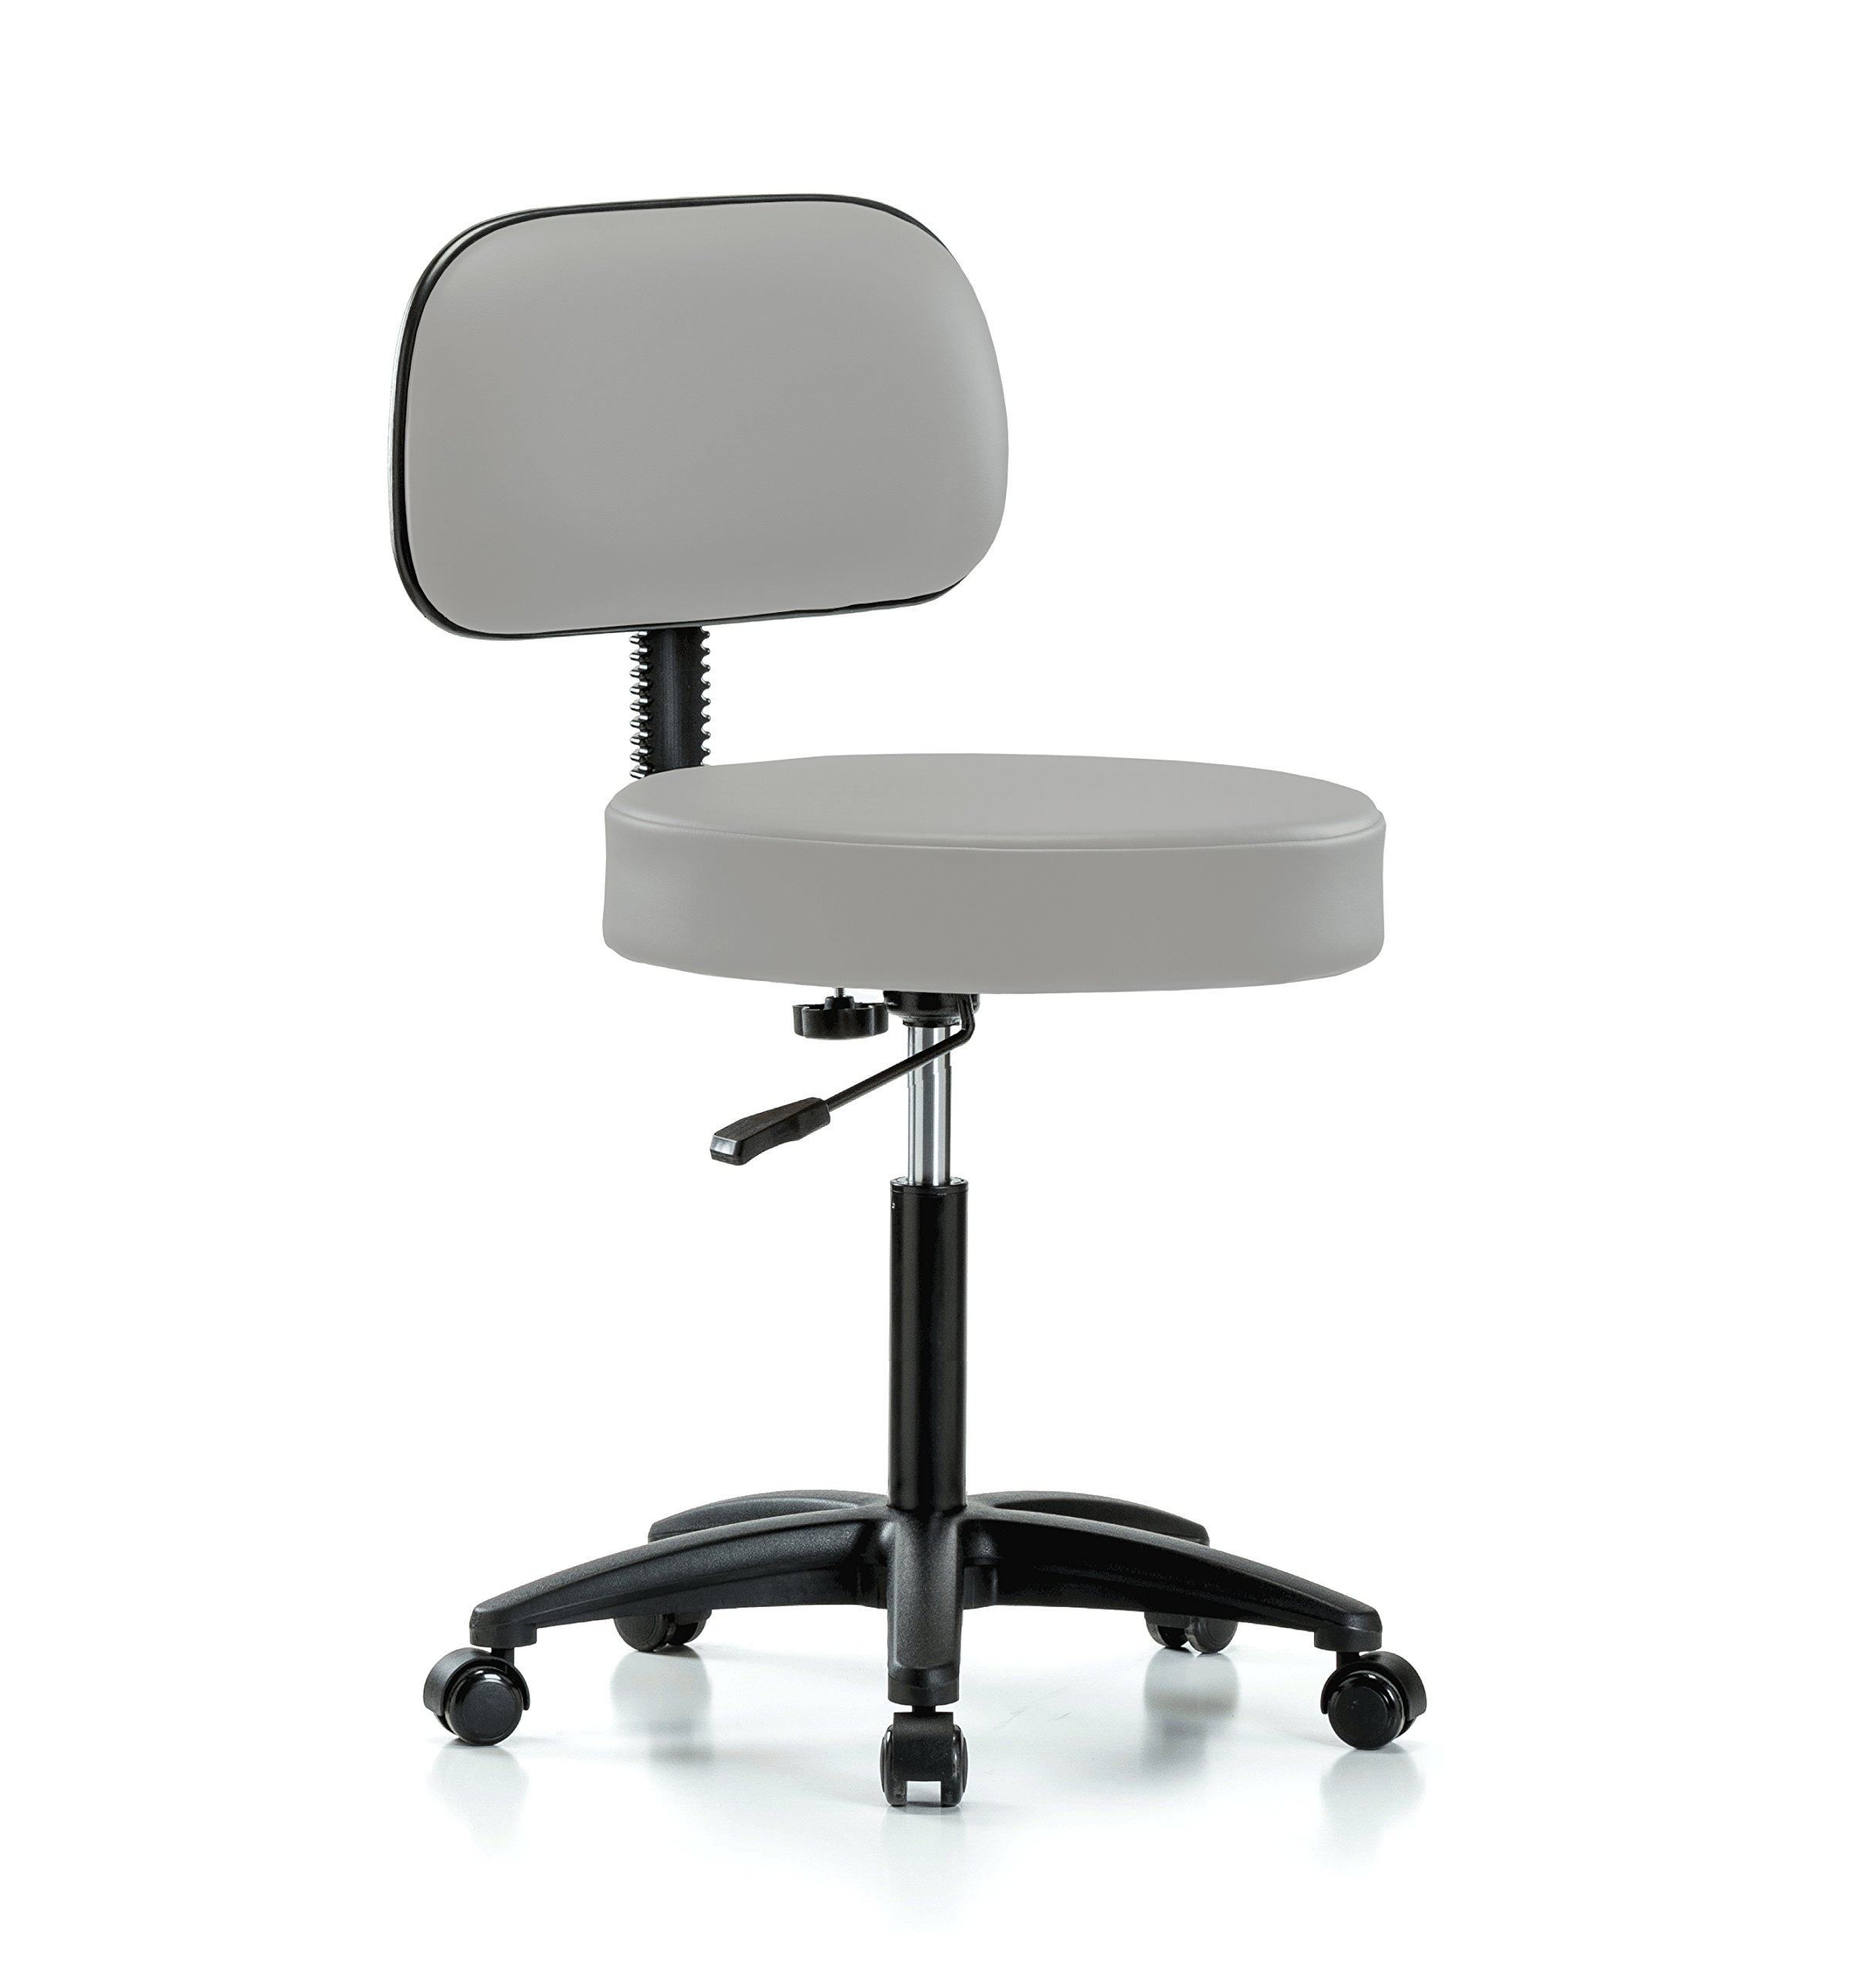 Perch Rolling Walter Exam Office Stool with Adjustable Backrest for Medical Dental Spa Salon Massage Lab or Workshop 21'' - 28.5'' (Hard Floor Casters/Grey Vinyl)